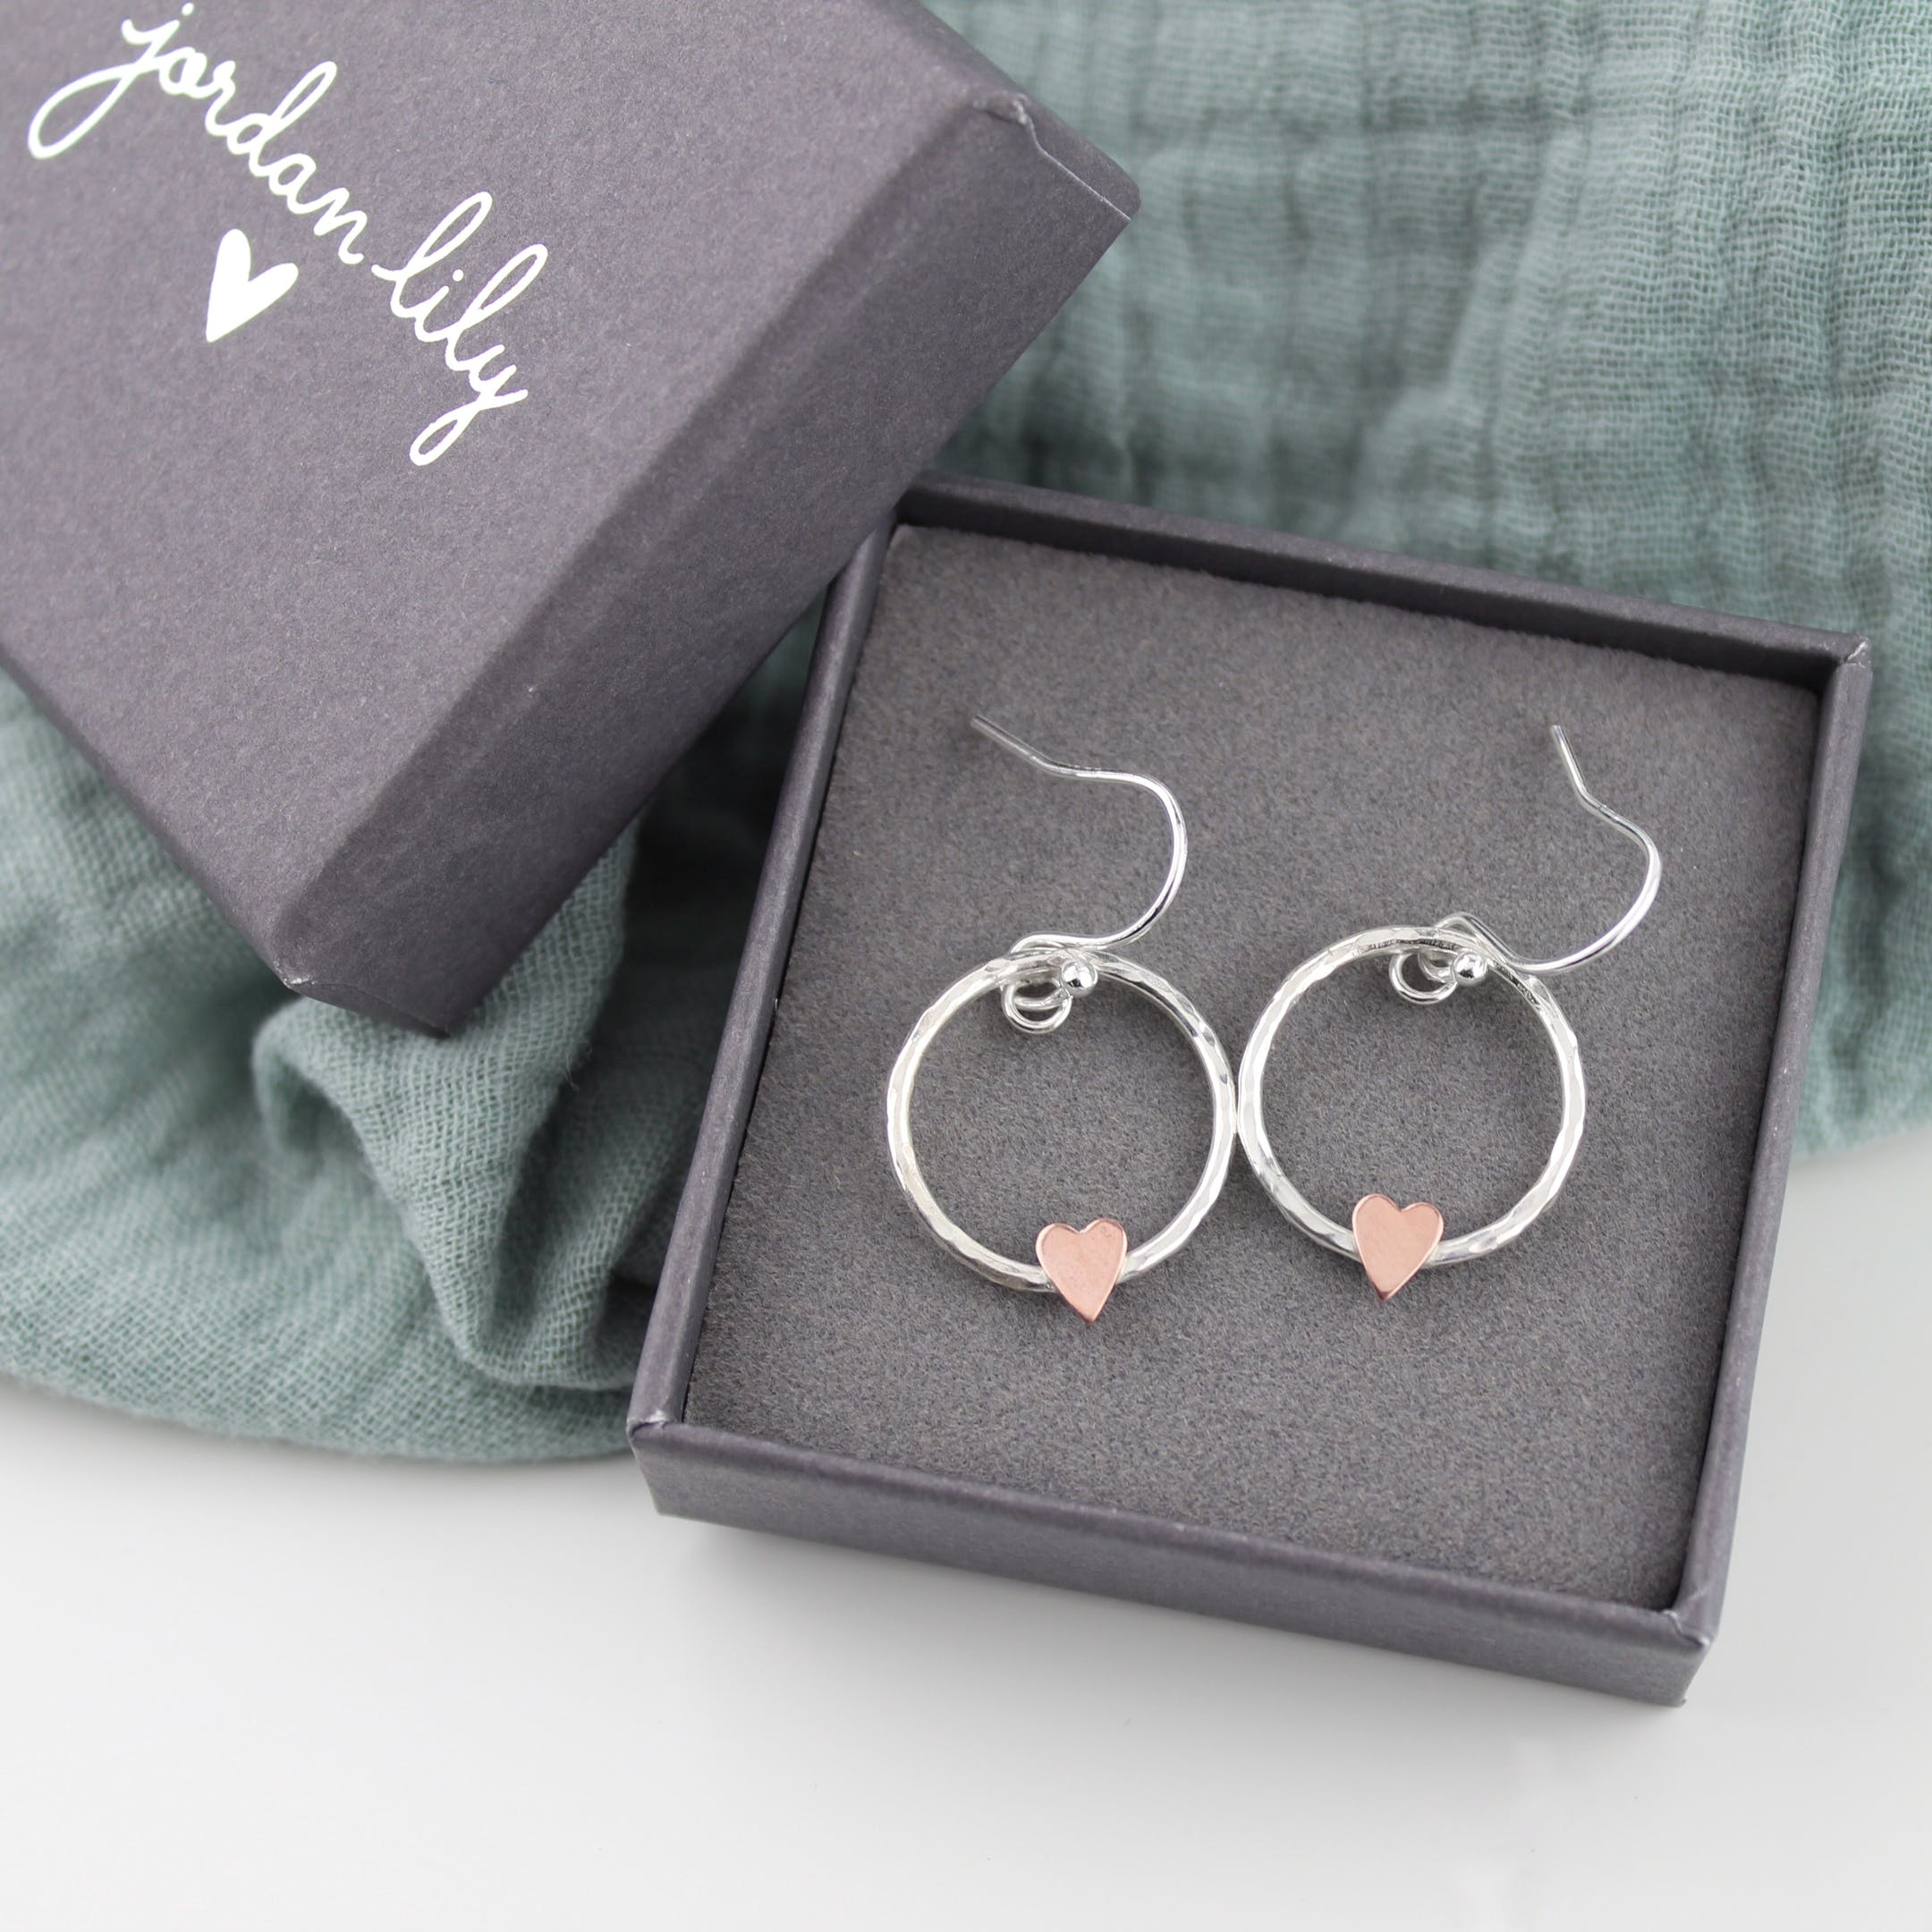 Copper Heart Christian Earrings | Handmade Silver Jewellery UK | Jordan Lily Designs | Cheerfully Given - Christian Gifts UK